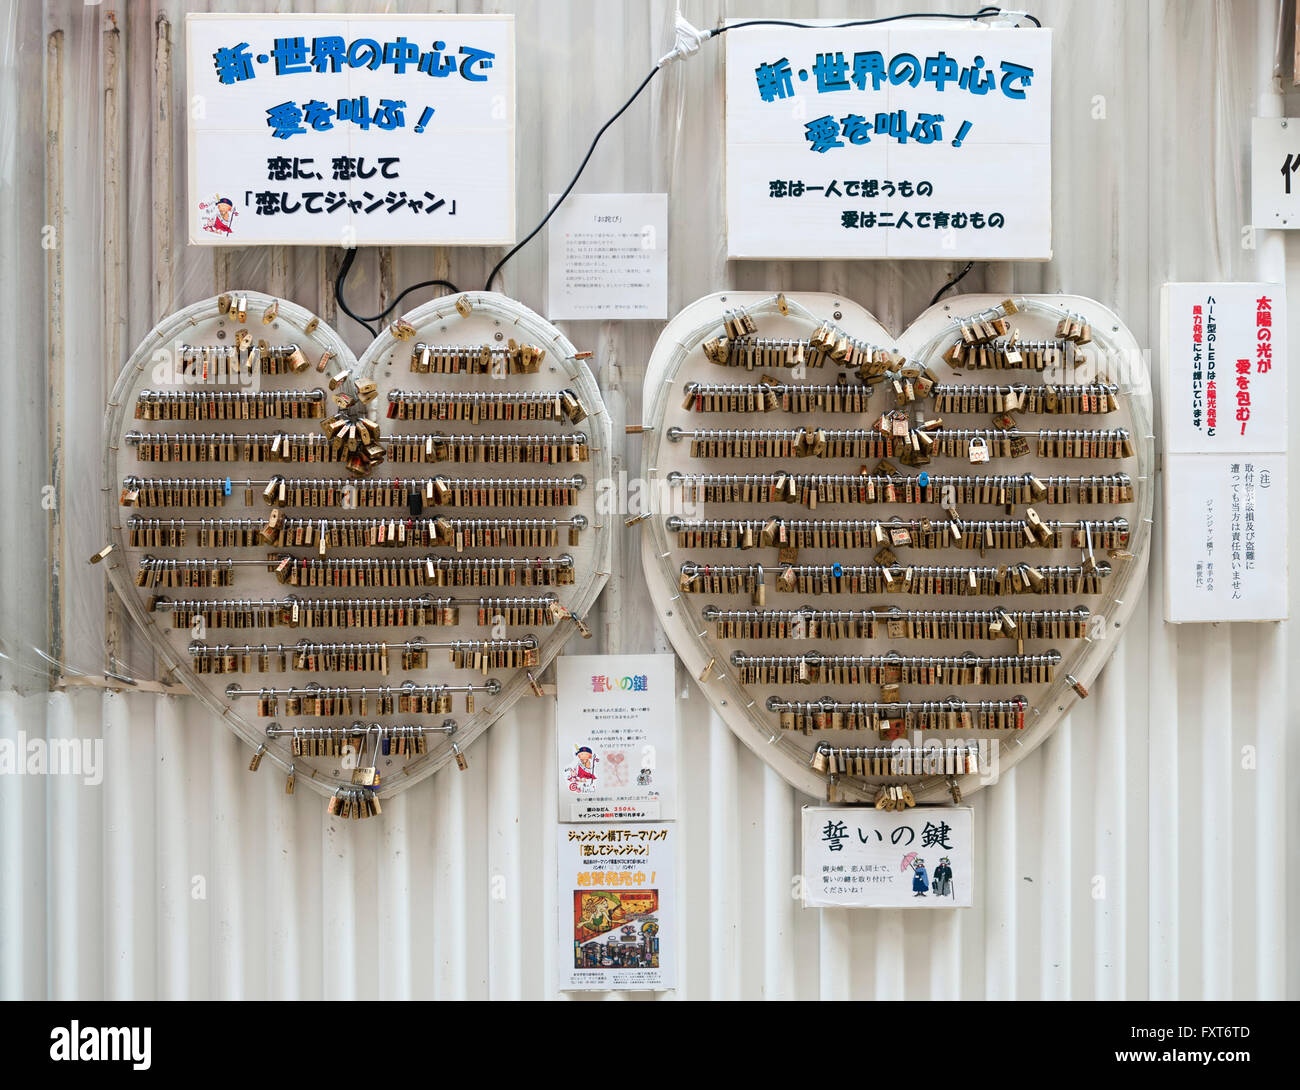 Osaka, Japan. Love locks or padlocks fastened by couples to mark their relationship or symbolise their love - Stock Image